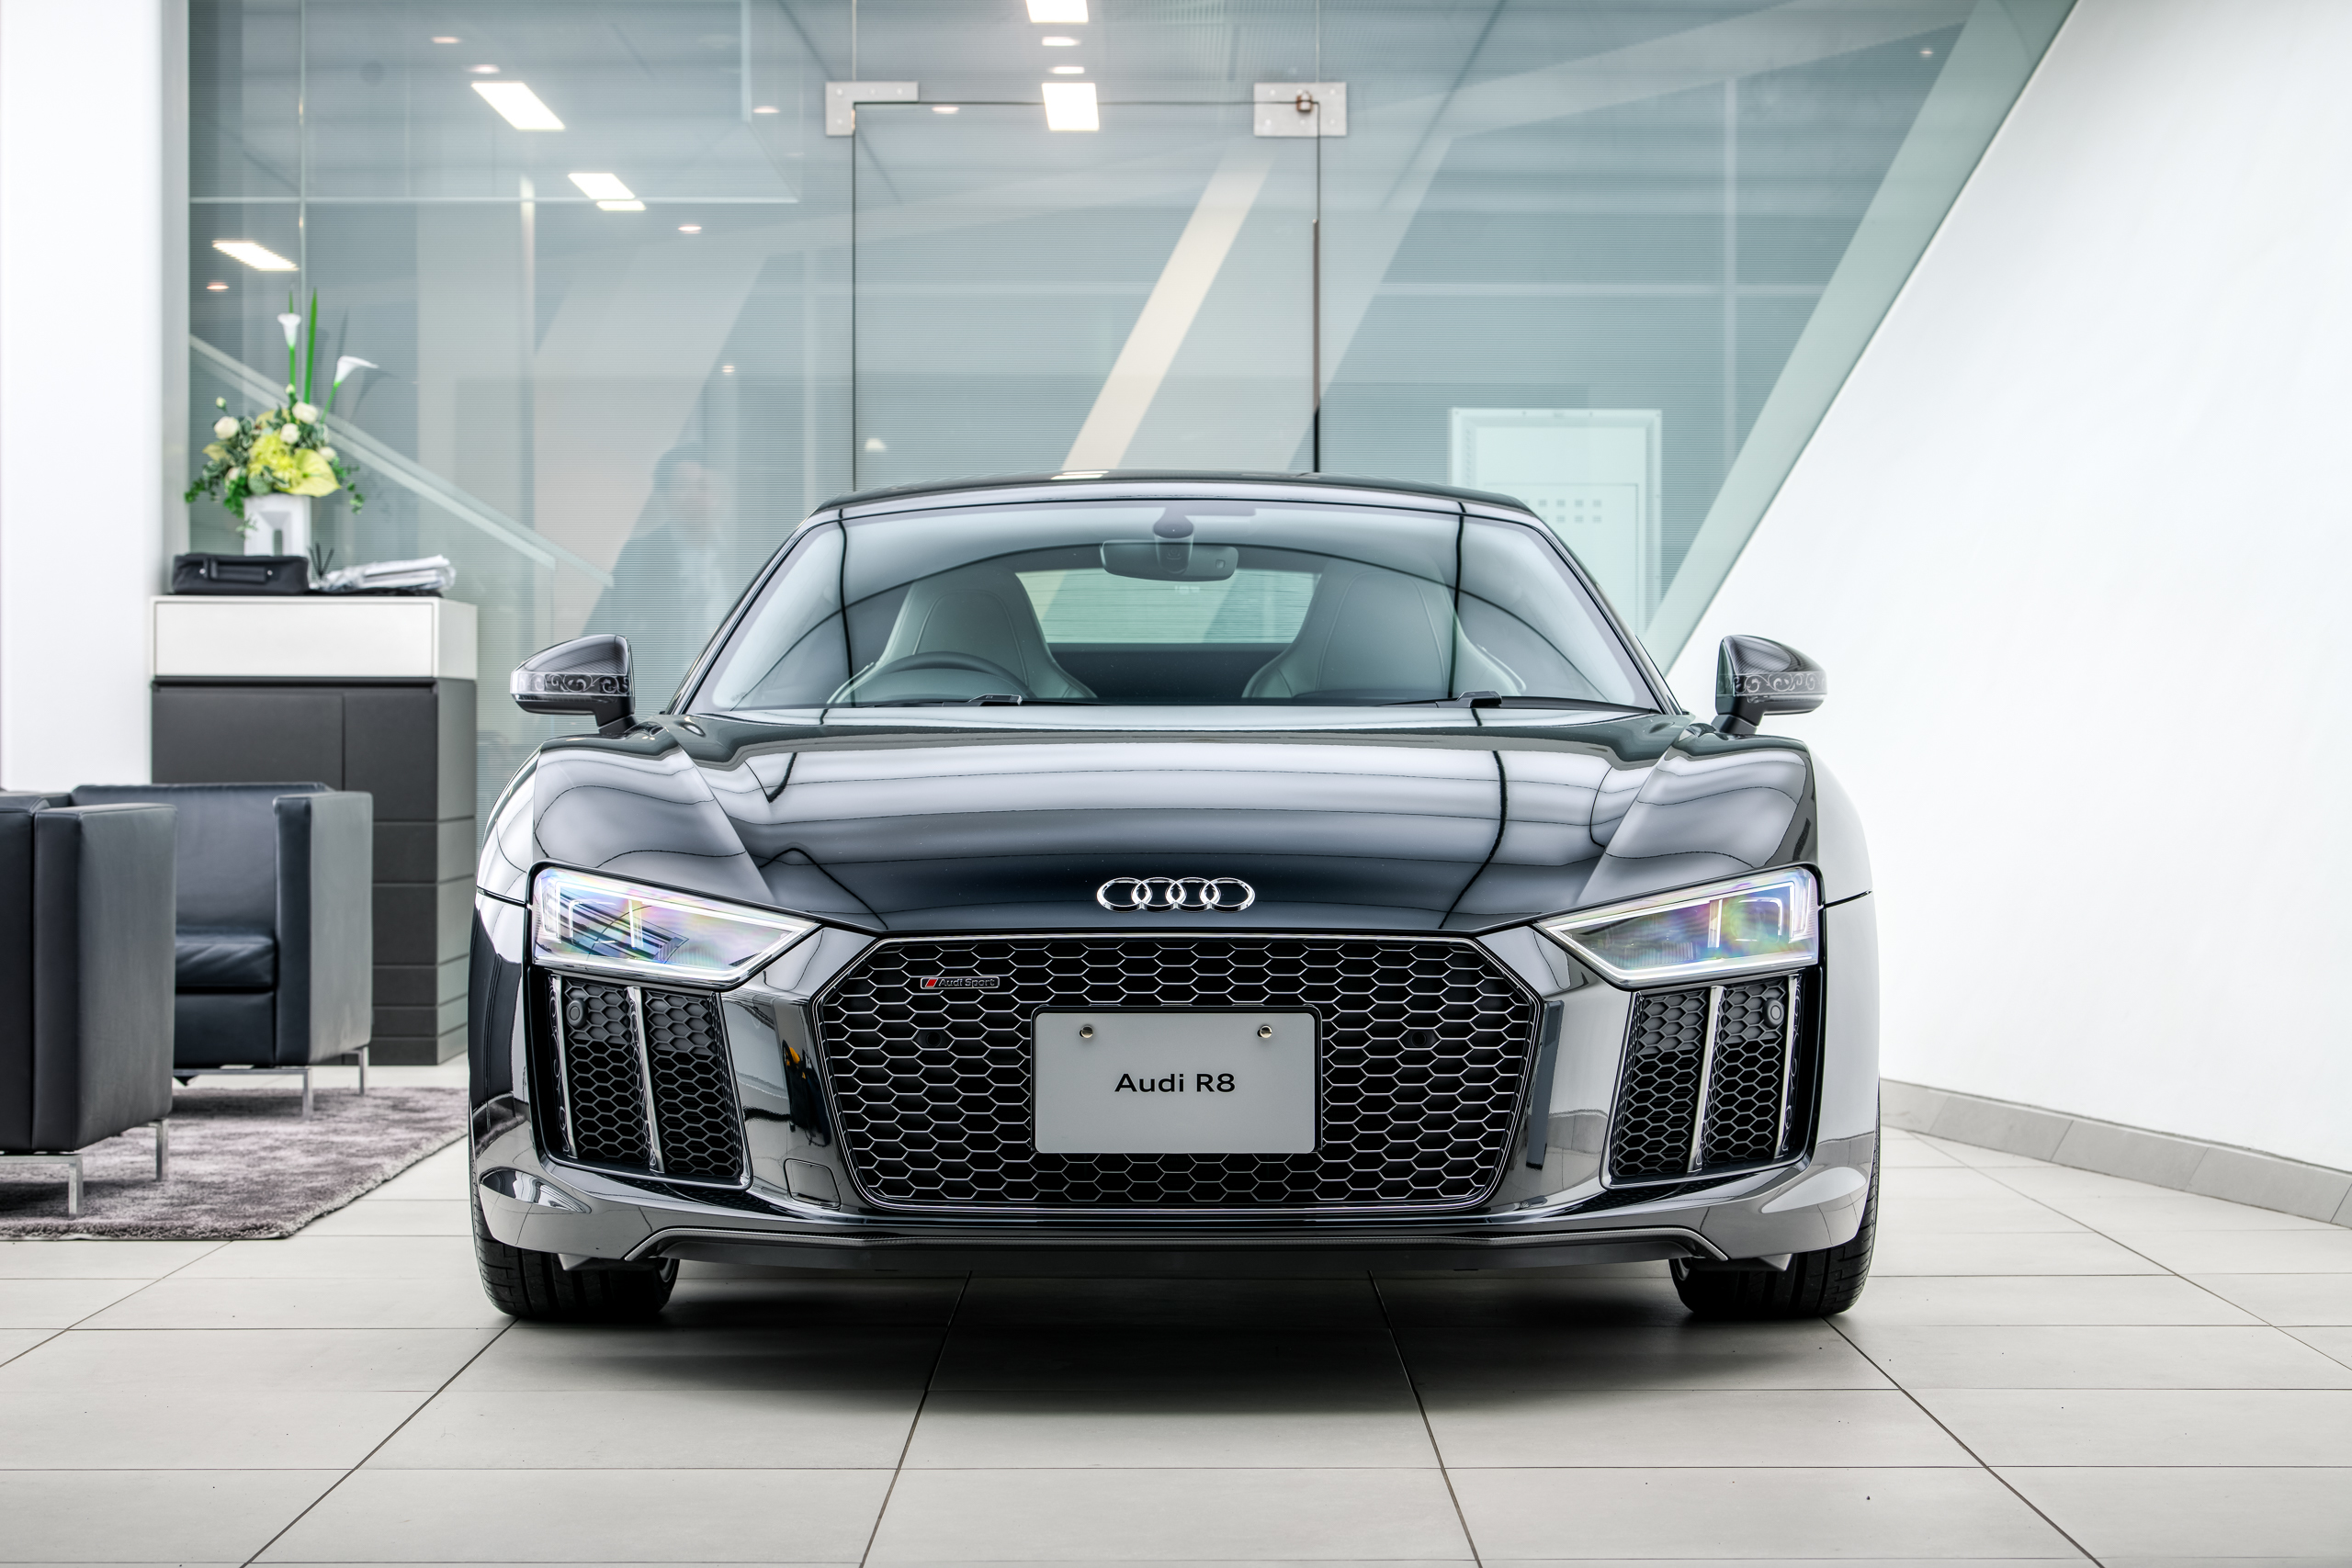 「The Audi R8 Star of Lucis」